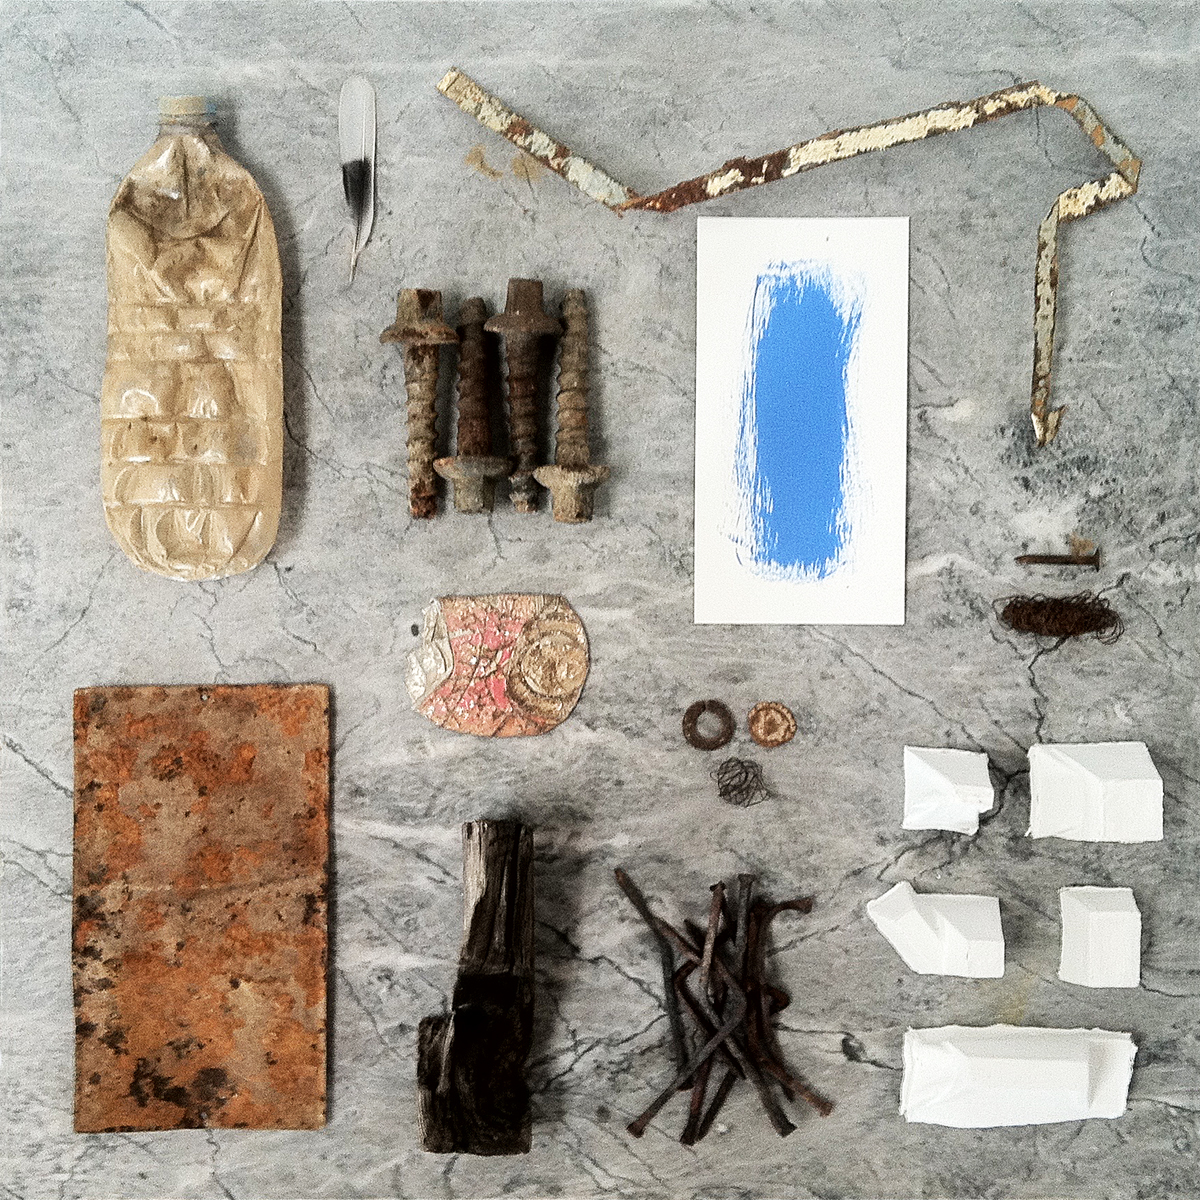 A feather, a blue painting on paper and other objects on a grey marble table.